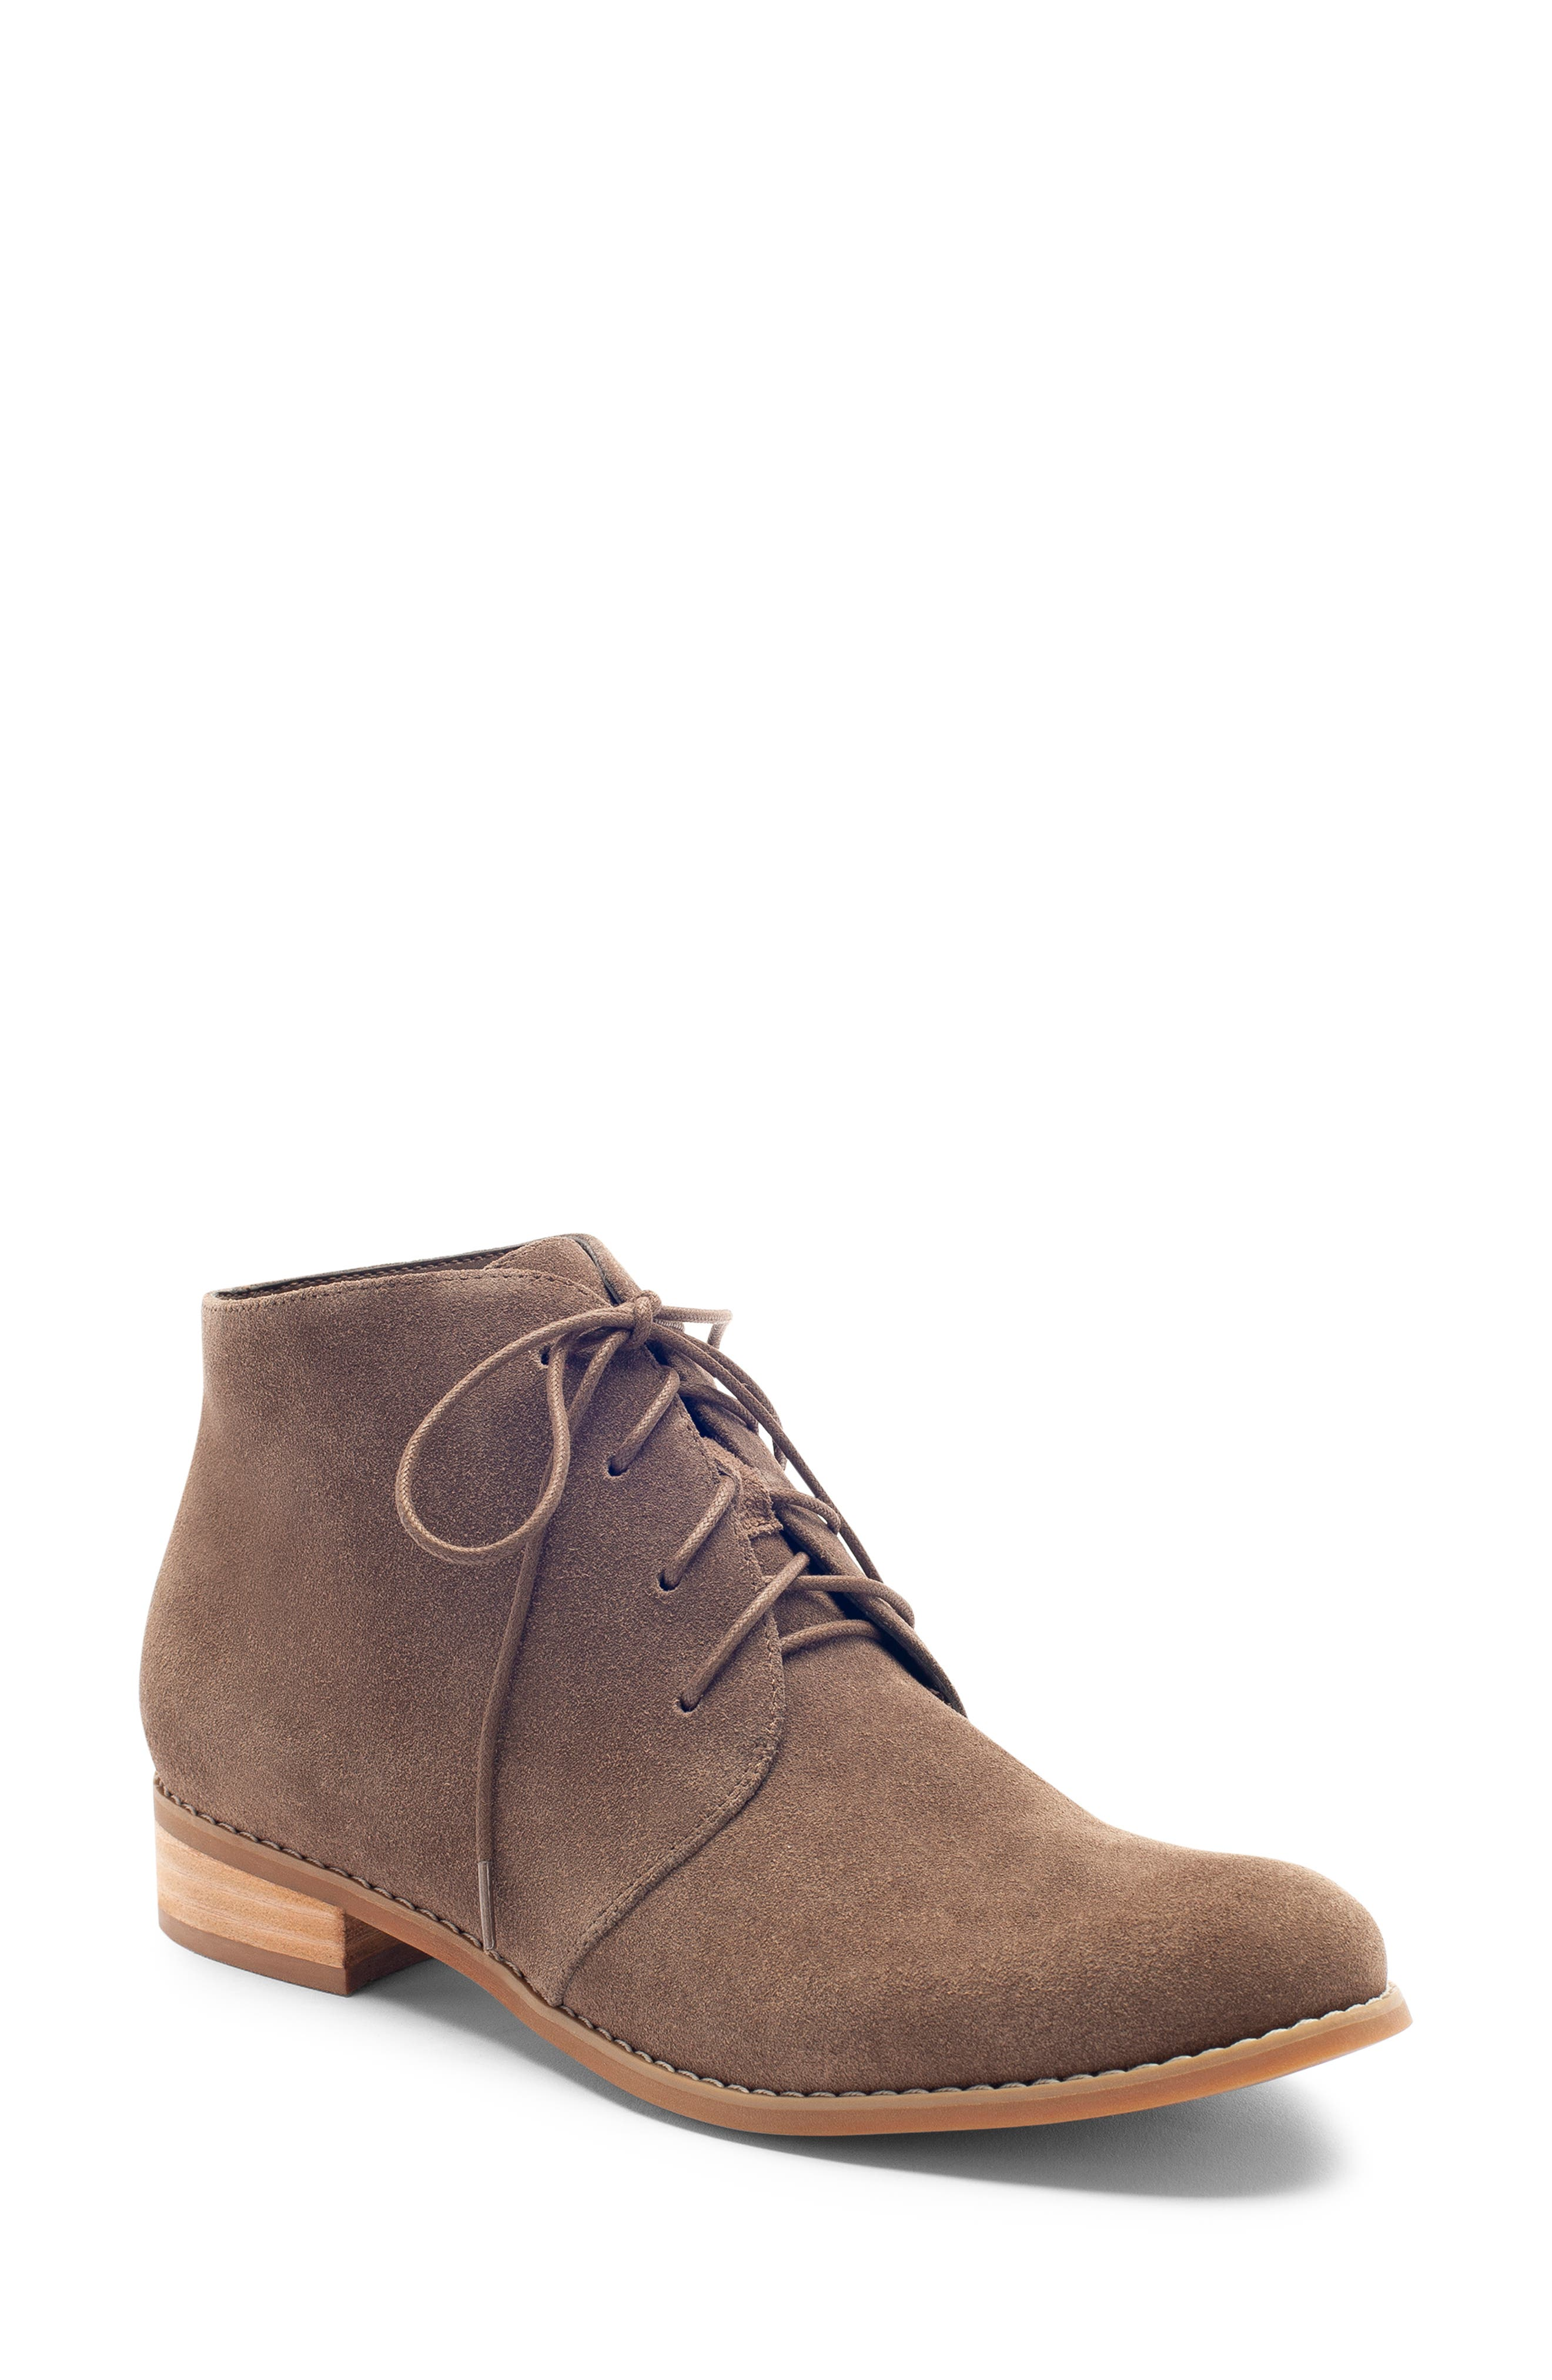 Rayann Waterproof Desert Boot,                         Main,                         color, DARK TAUPE SUEDE